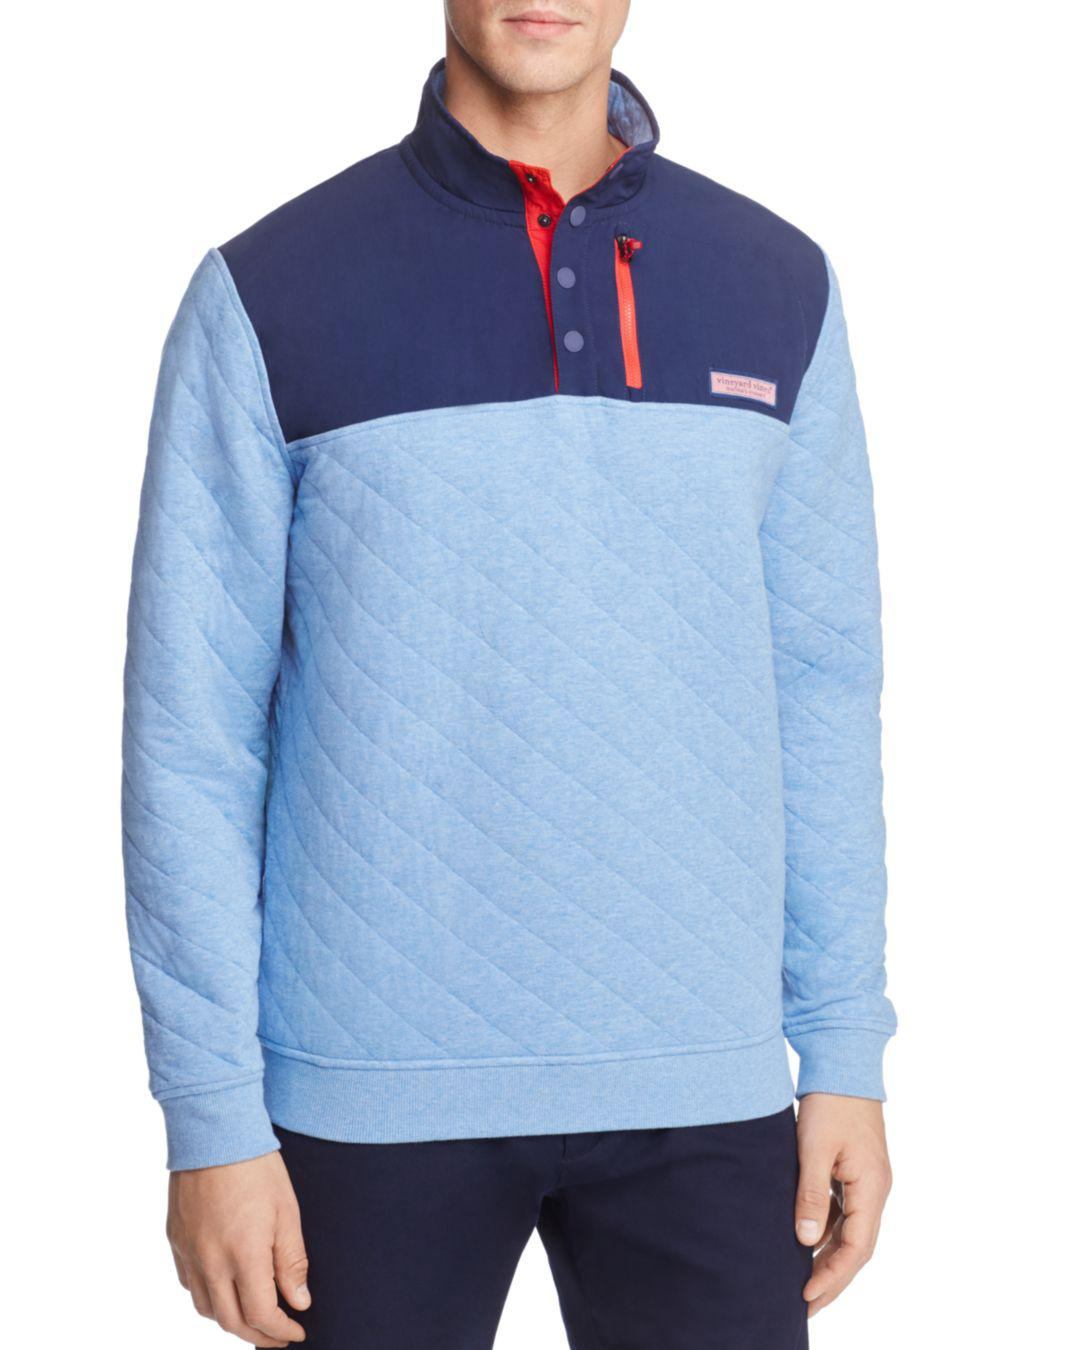 Lyst Vineyard Vines Quilted Pullover Sweater In Blue For Men